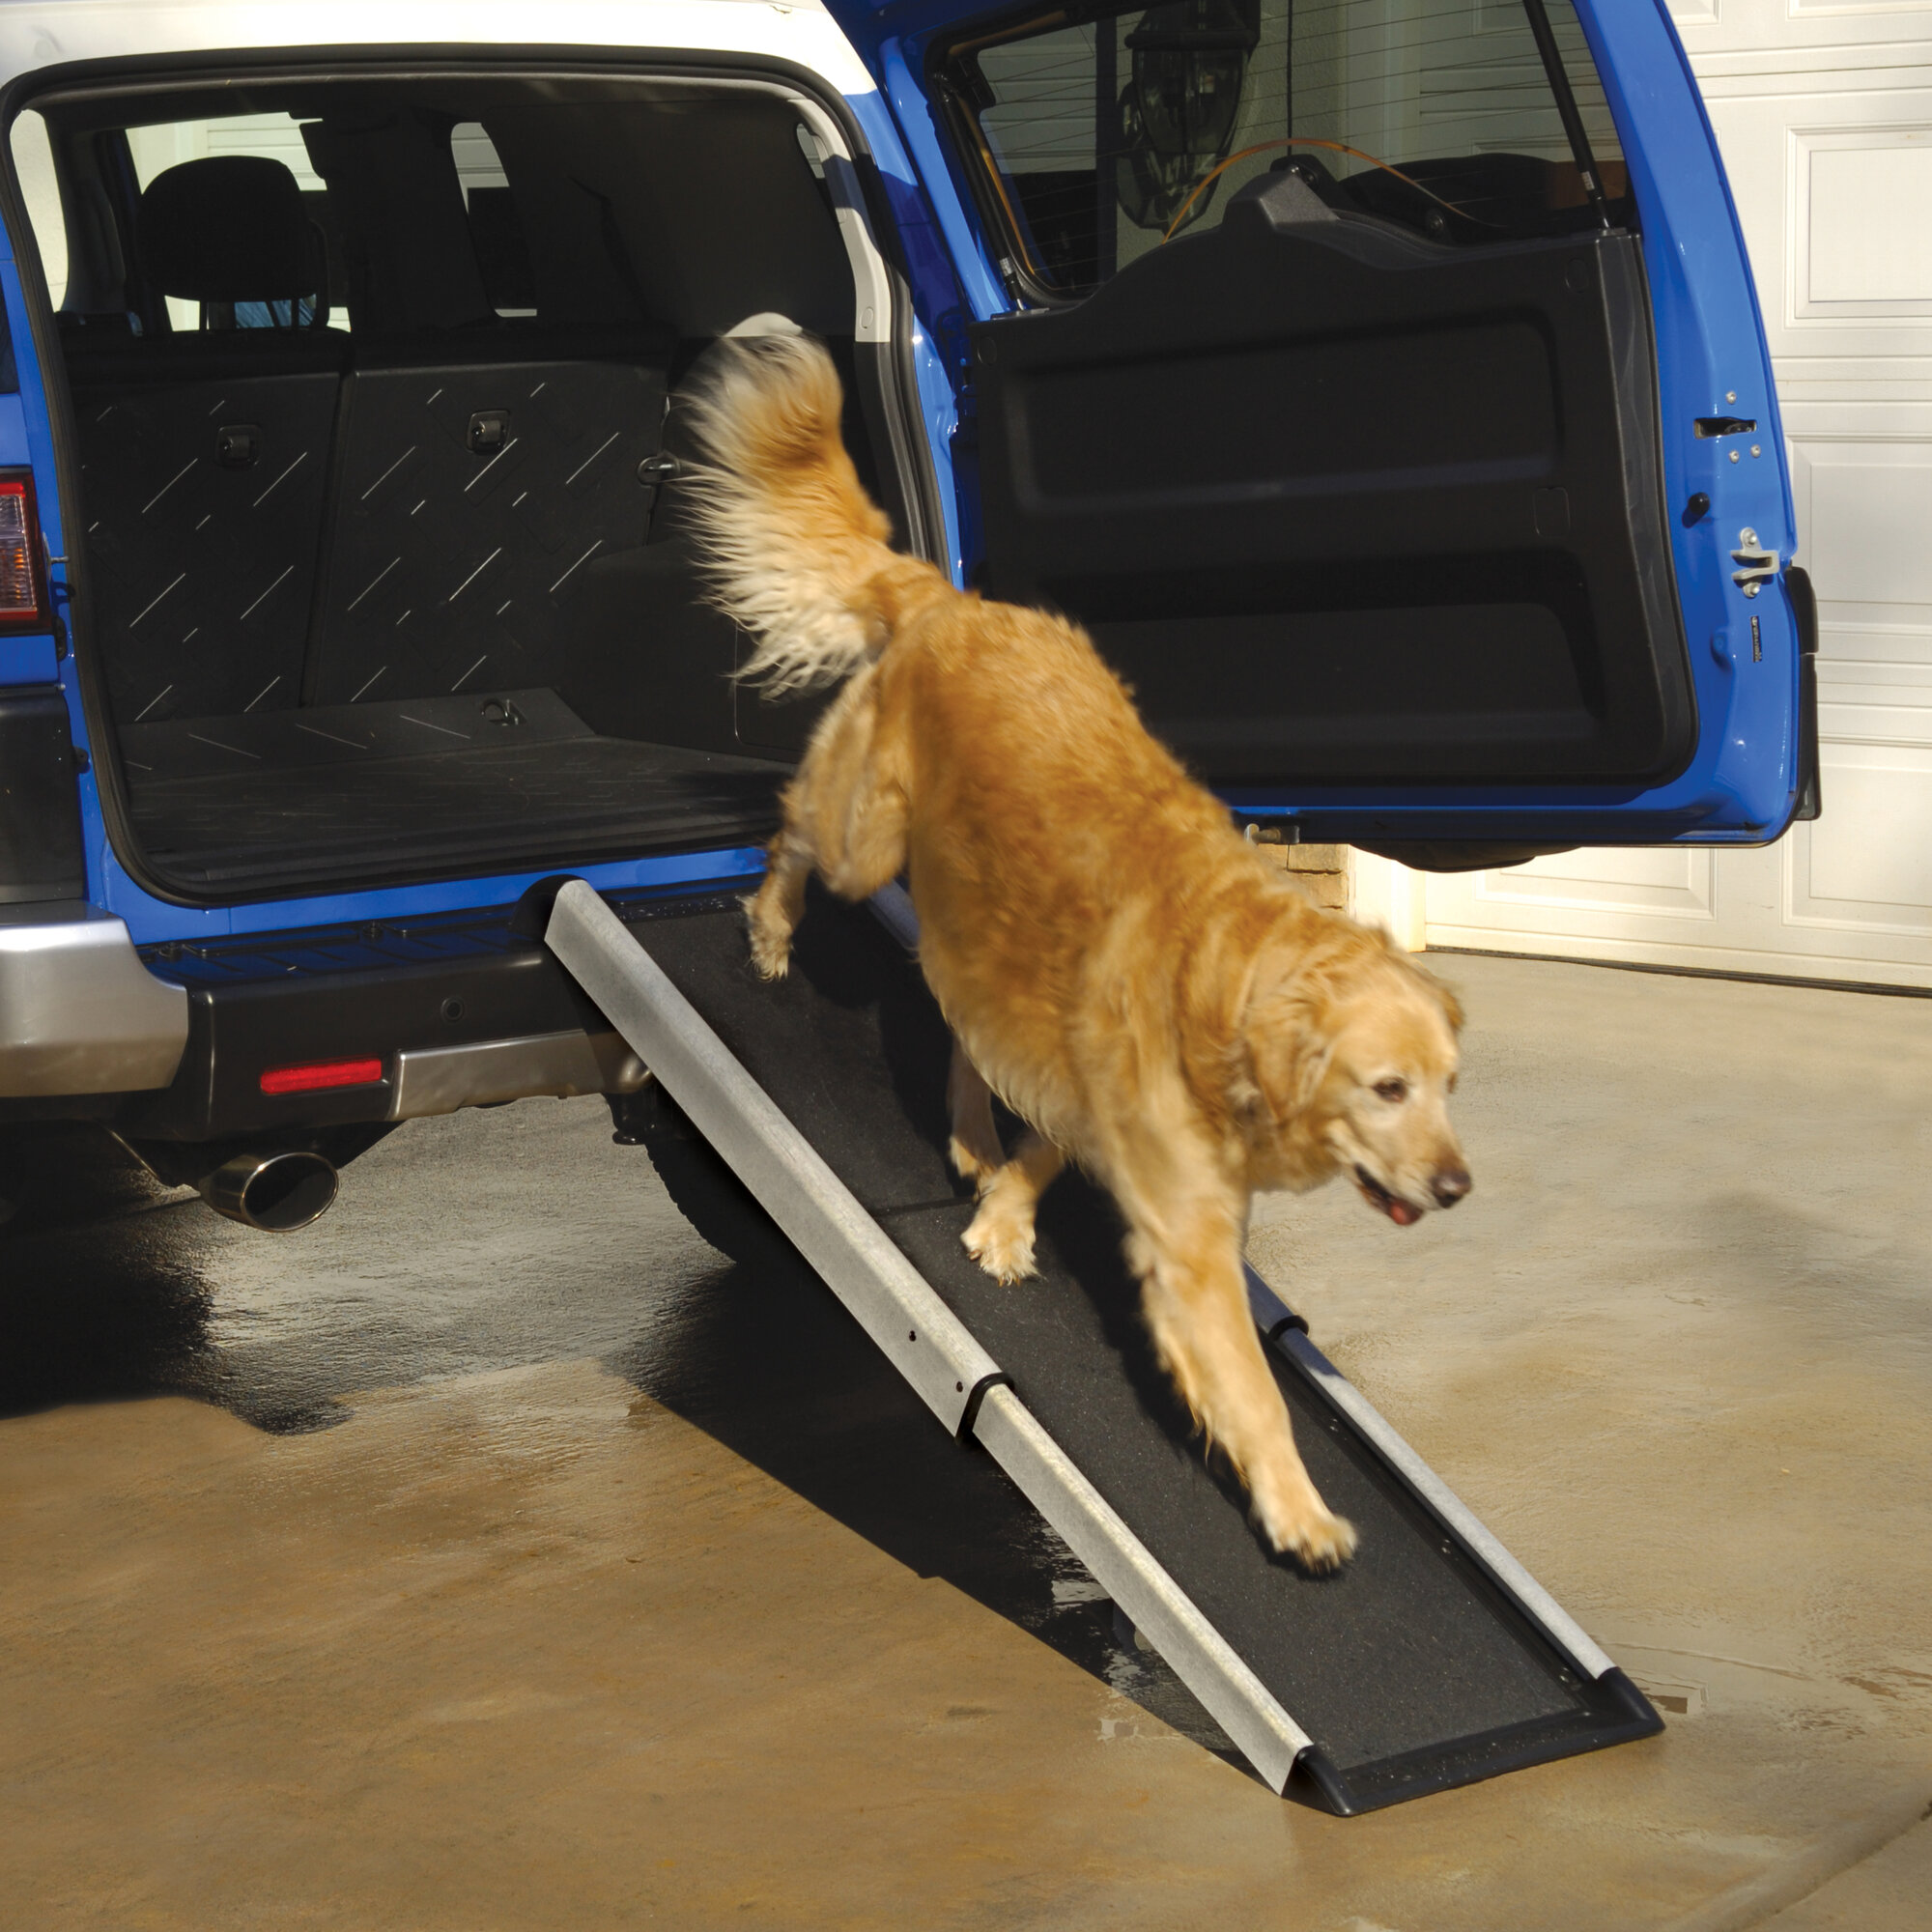 Dog on ramp for car